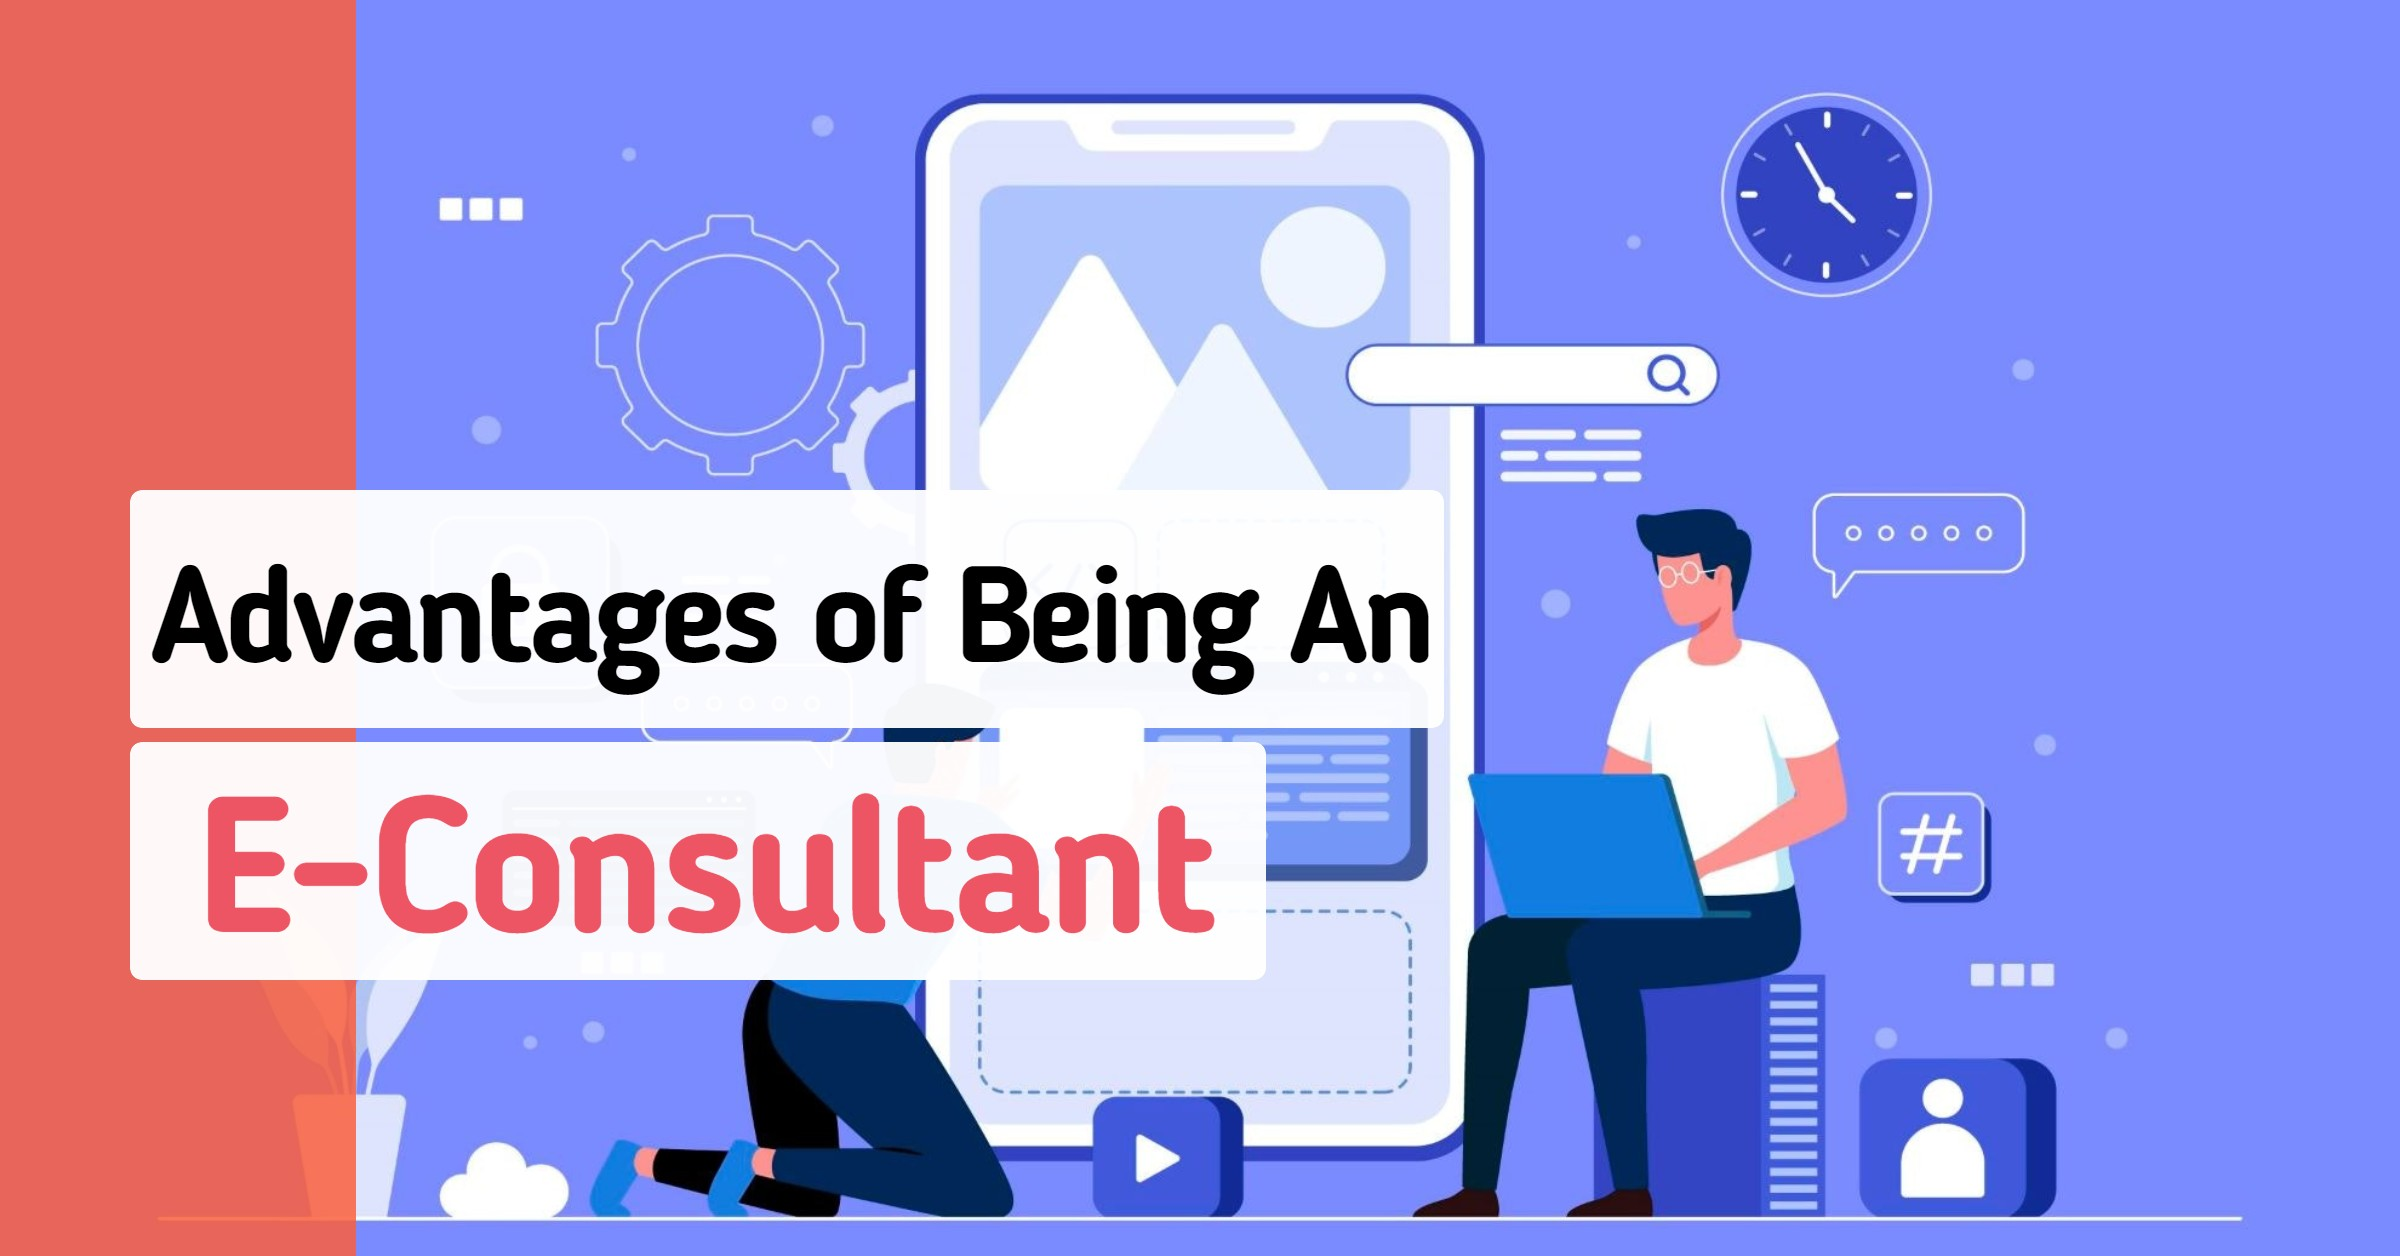 What are the Advantages of Being an e-Consultant?